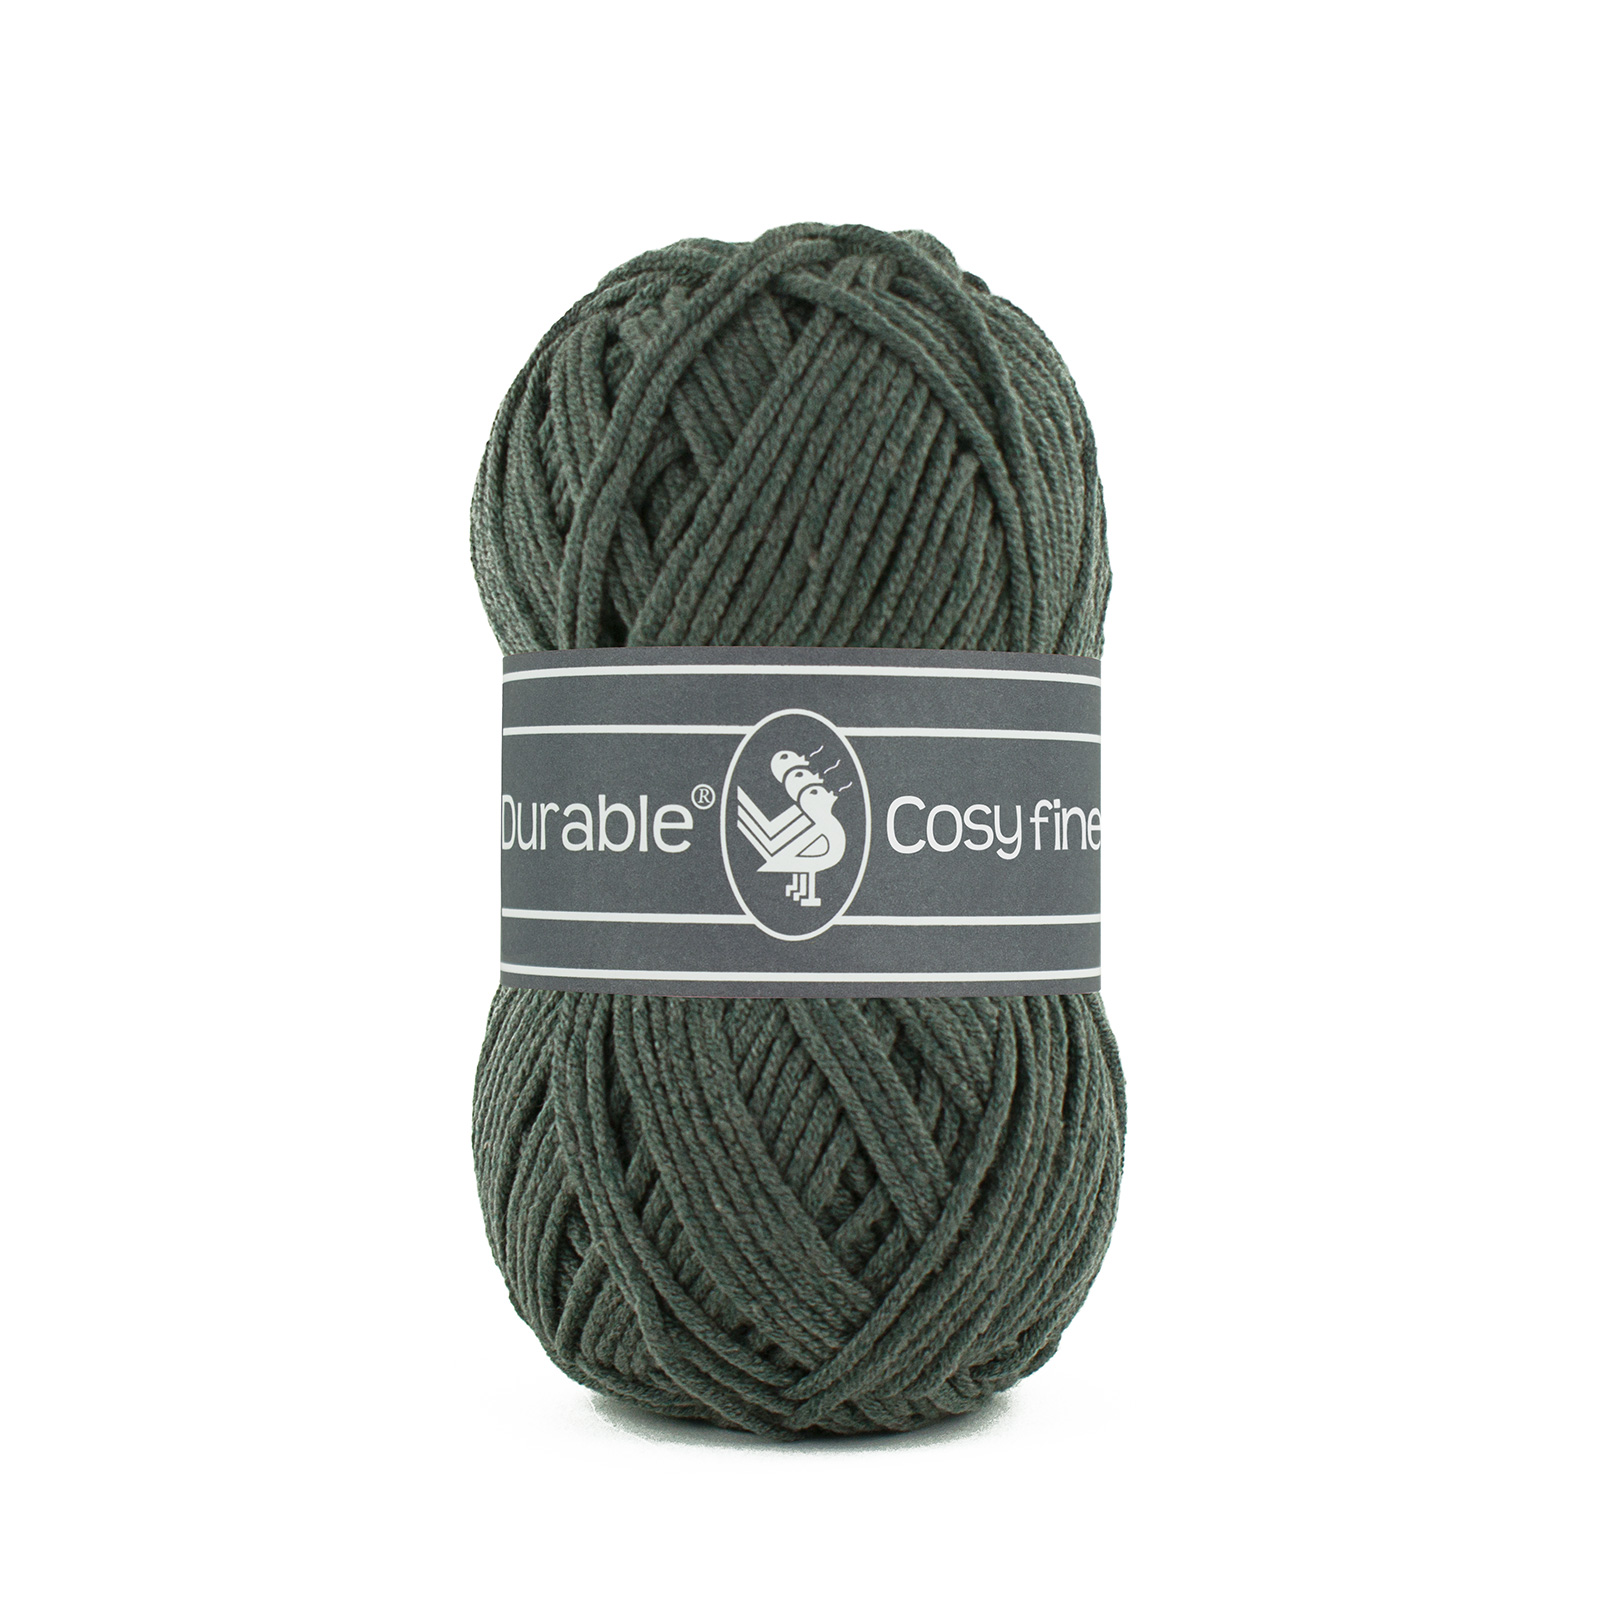 Durable Cosy fine 2238 Antracite